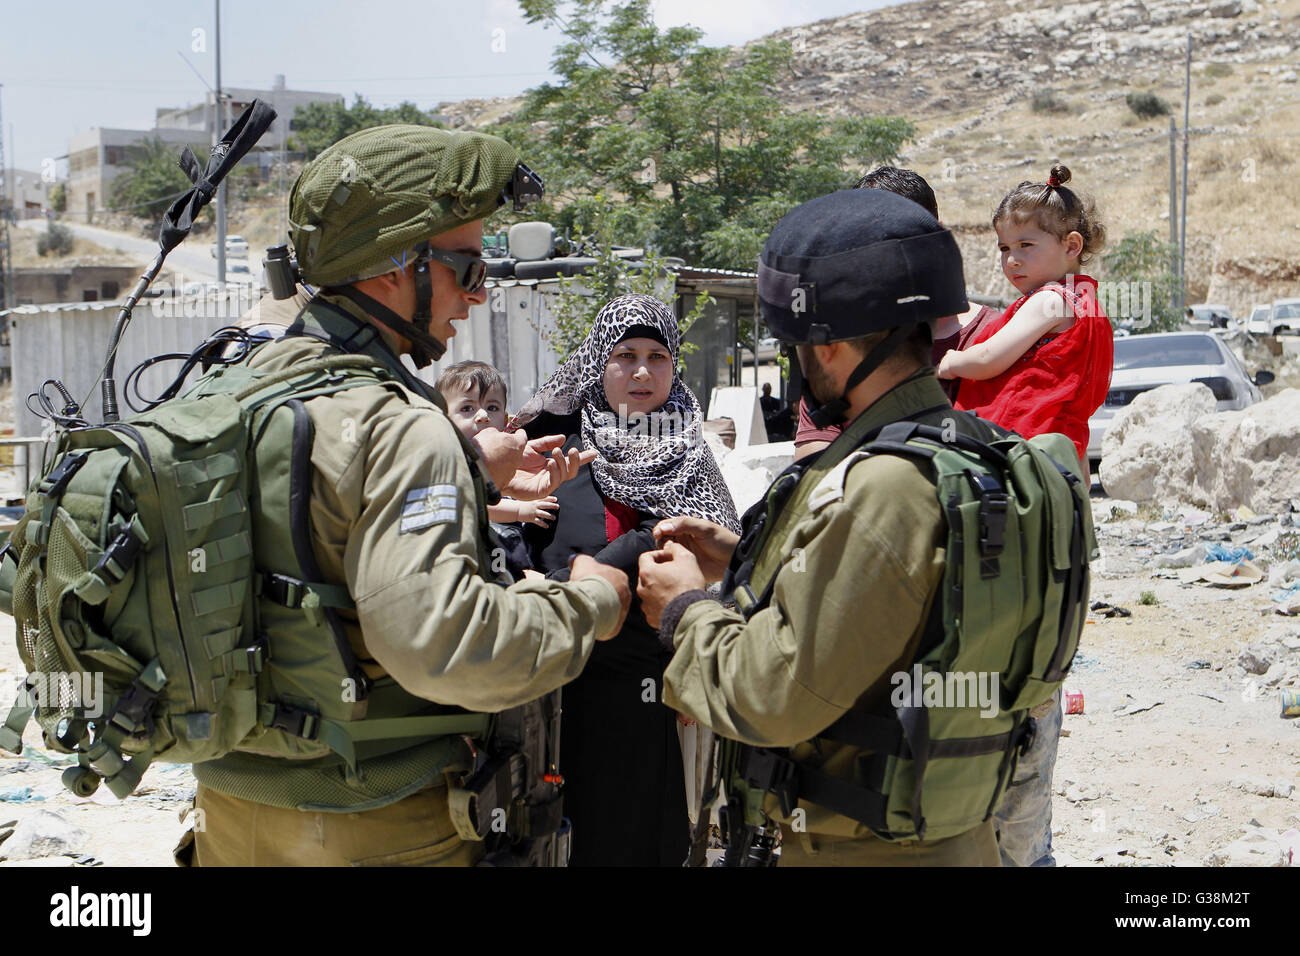 Hebron, West Bank, Palestinian Territory. 9th June, 2016. Israeli soldiers stop Palestinians at the entrance of - Stock Image